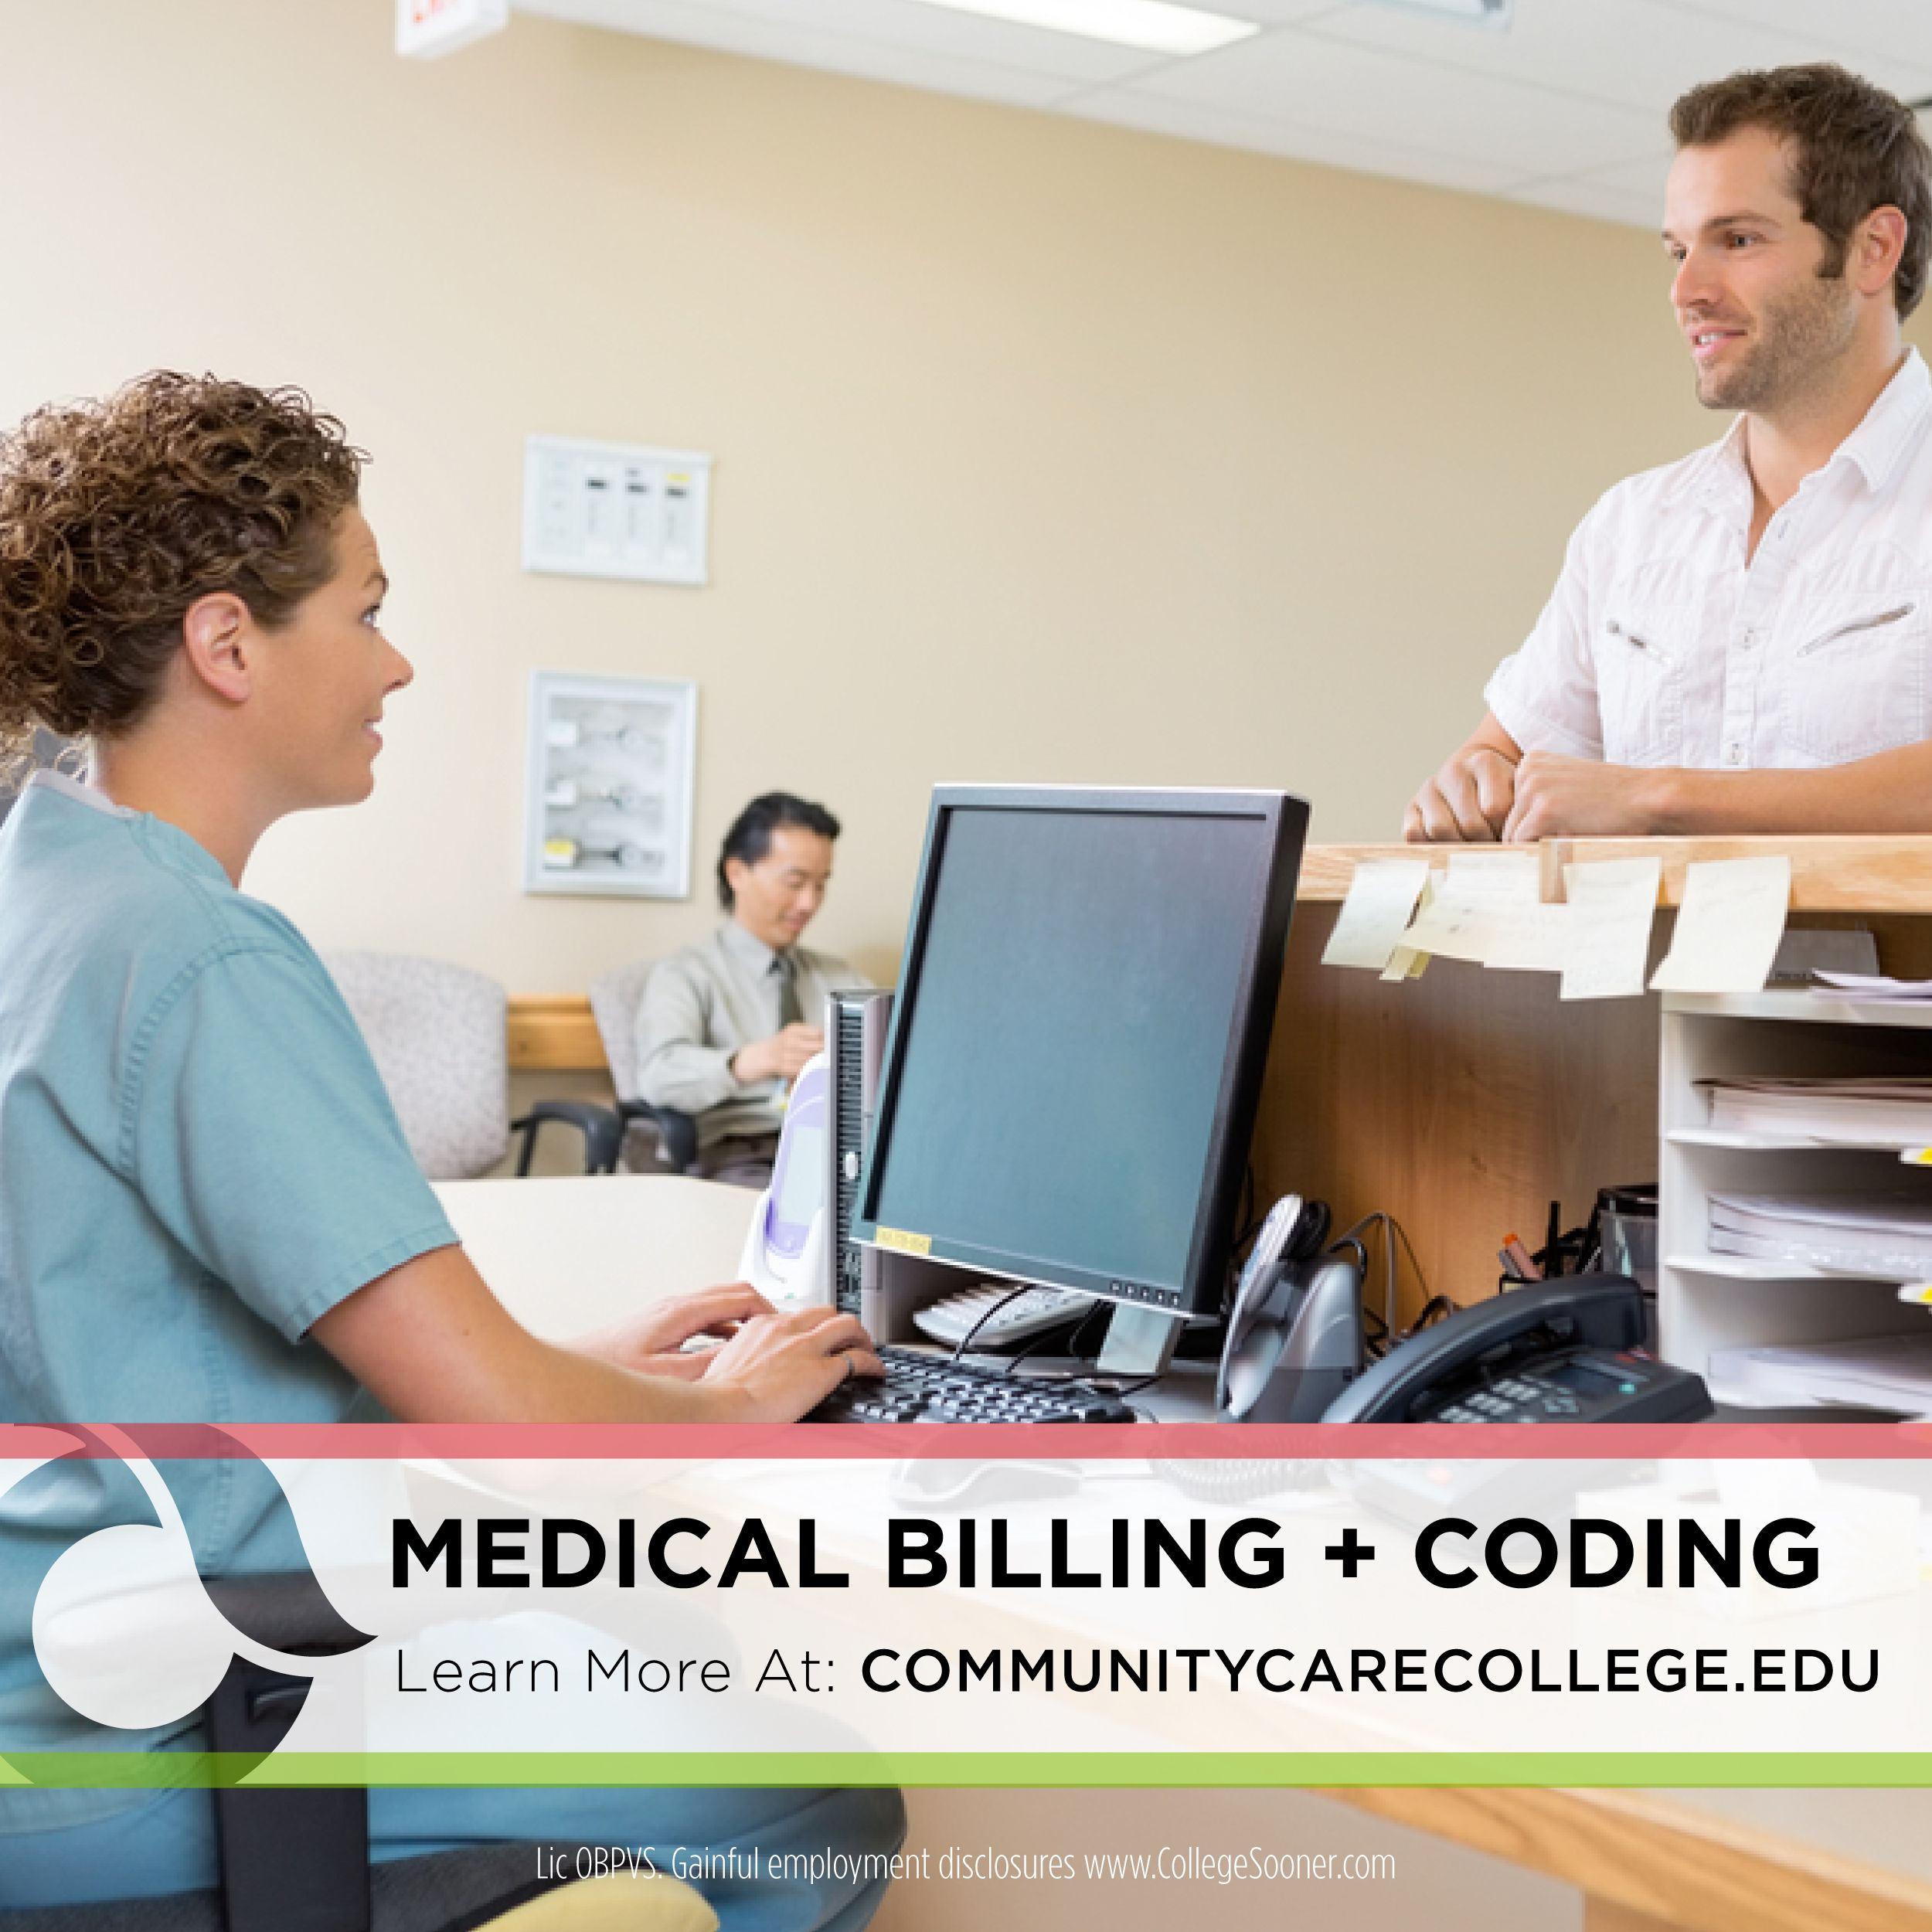 Learn when and where you want in our 100 online program the learn when and where you want in our online program the medical billing and coding program is set up to assist students in training for a career xflitez Choice Image